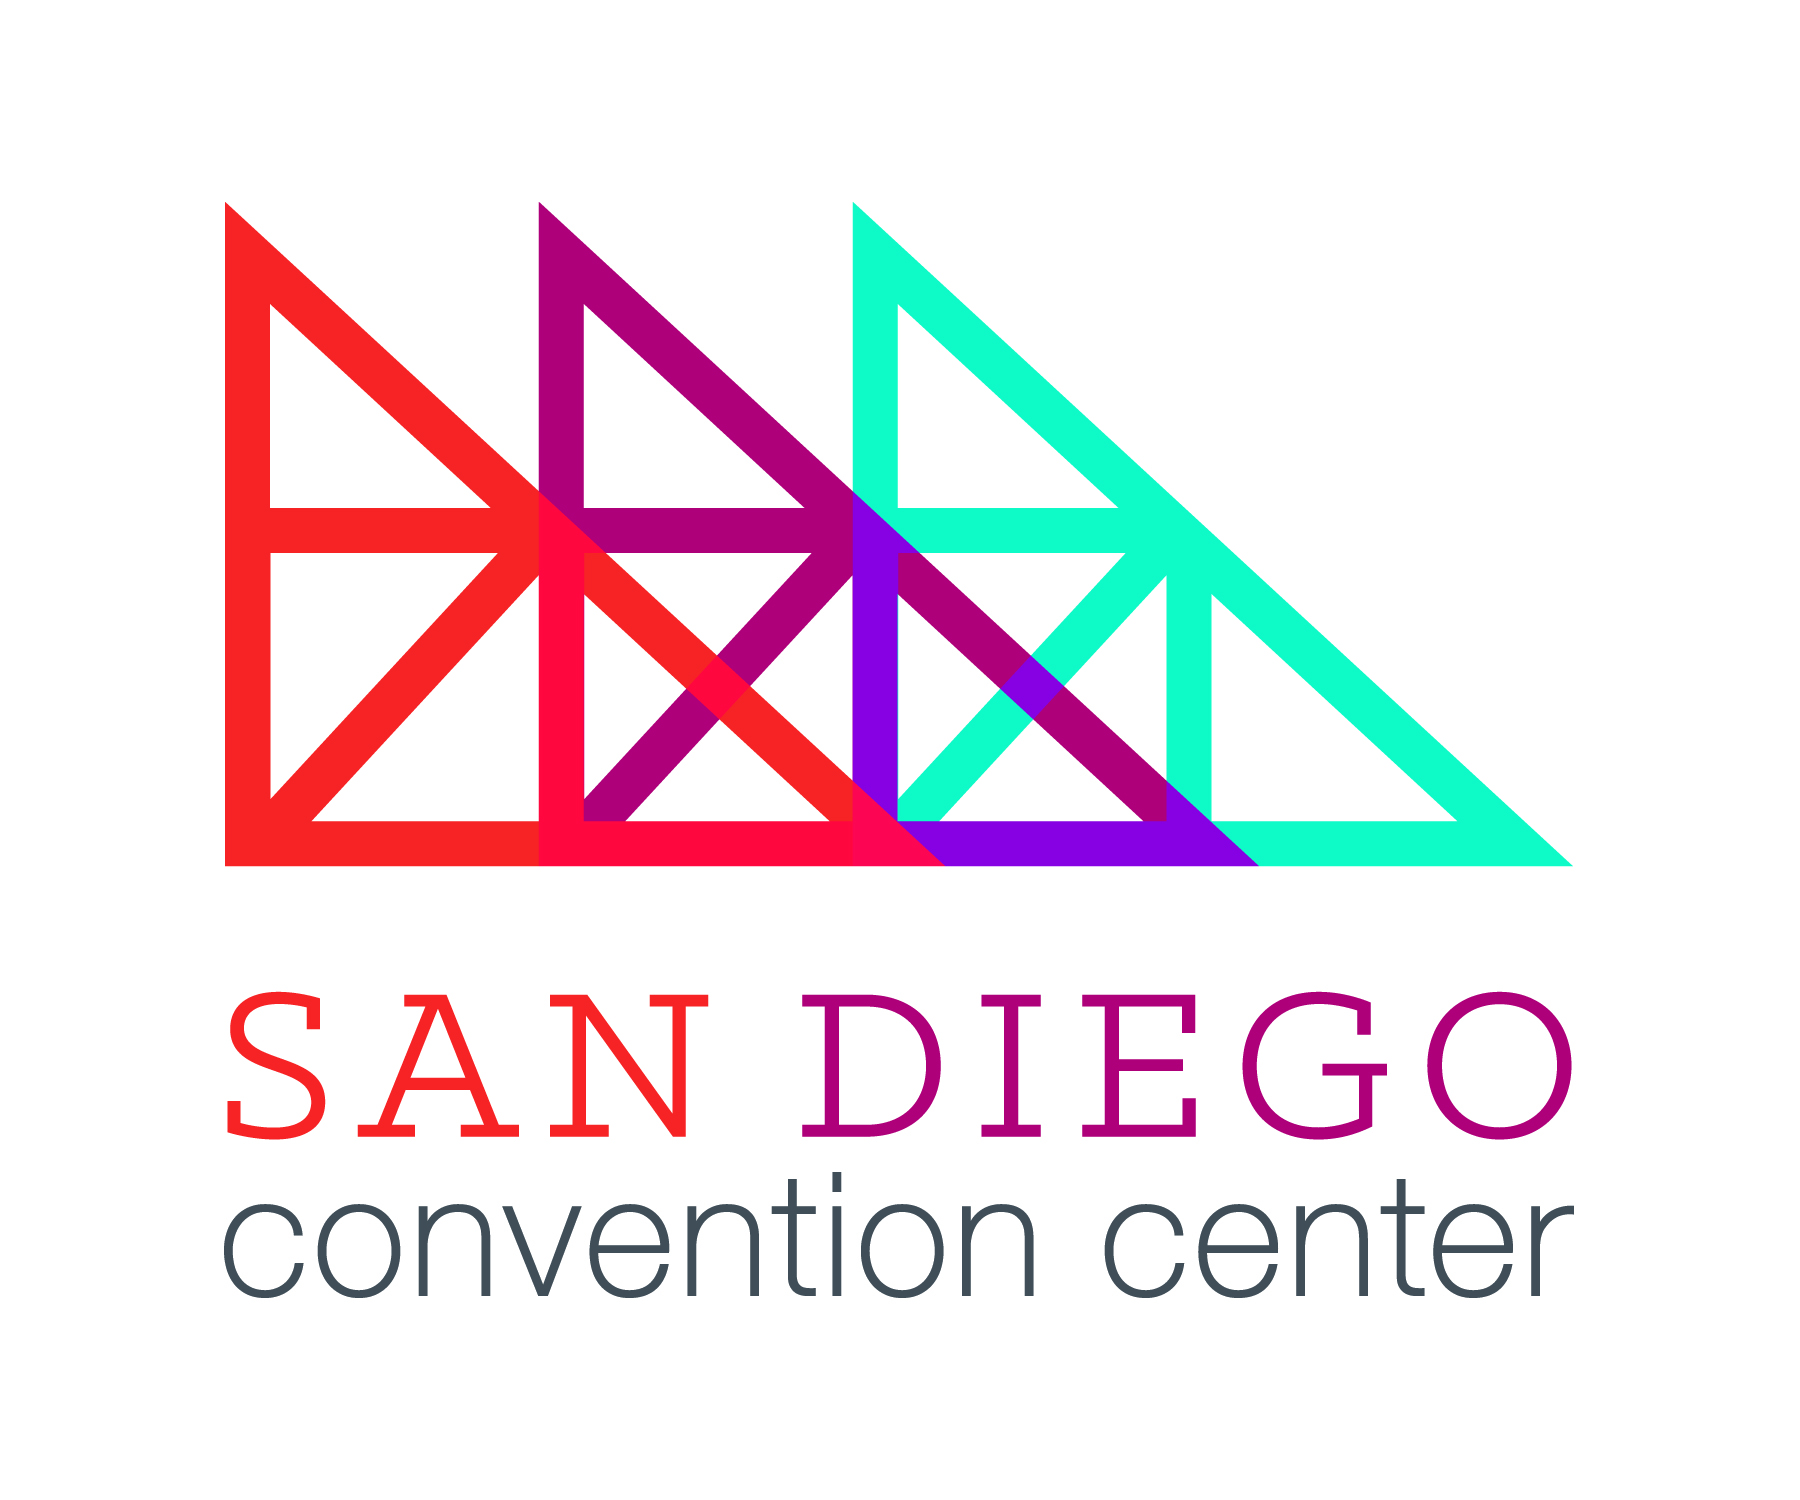 San Diego Convention Center logo